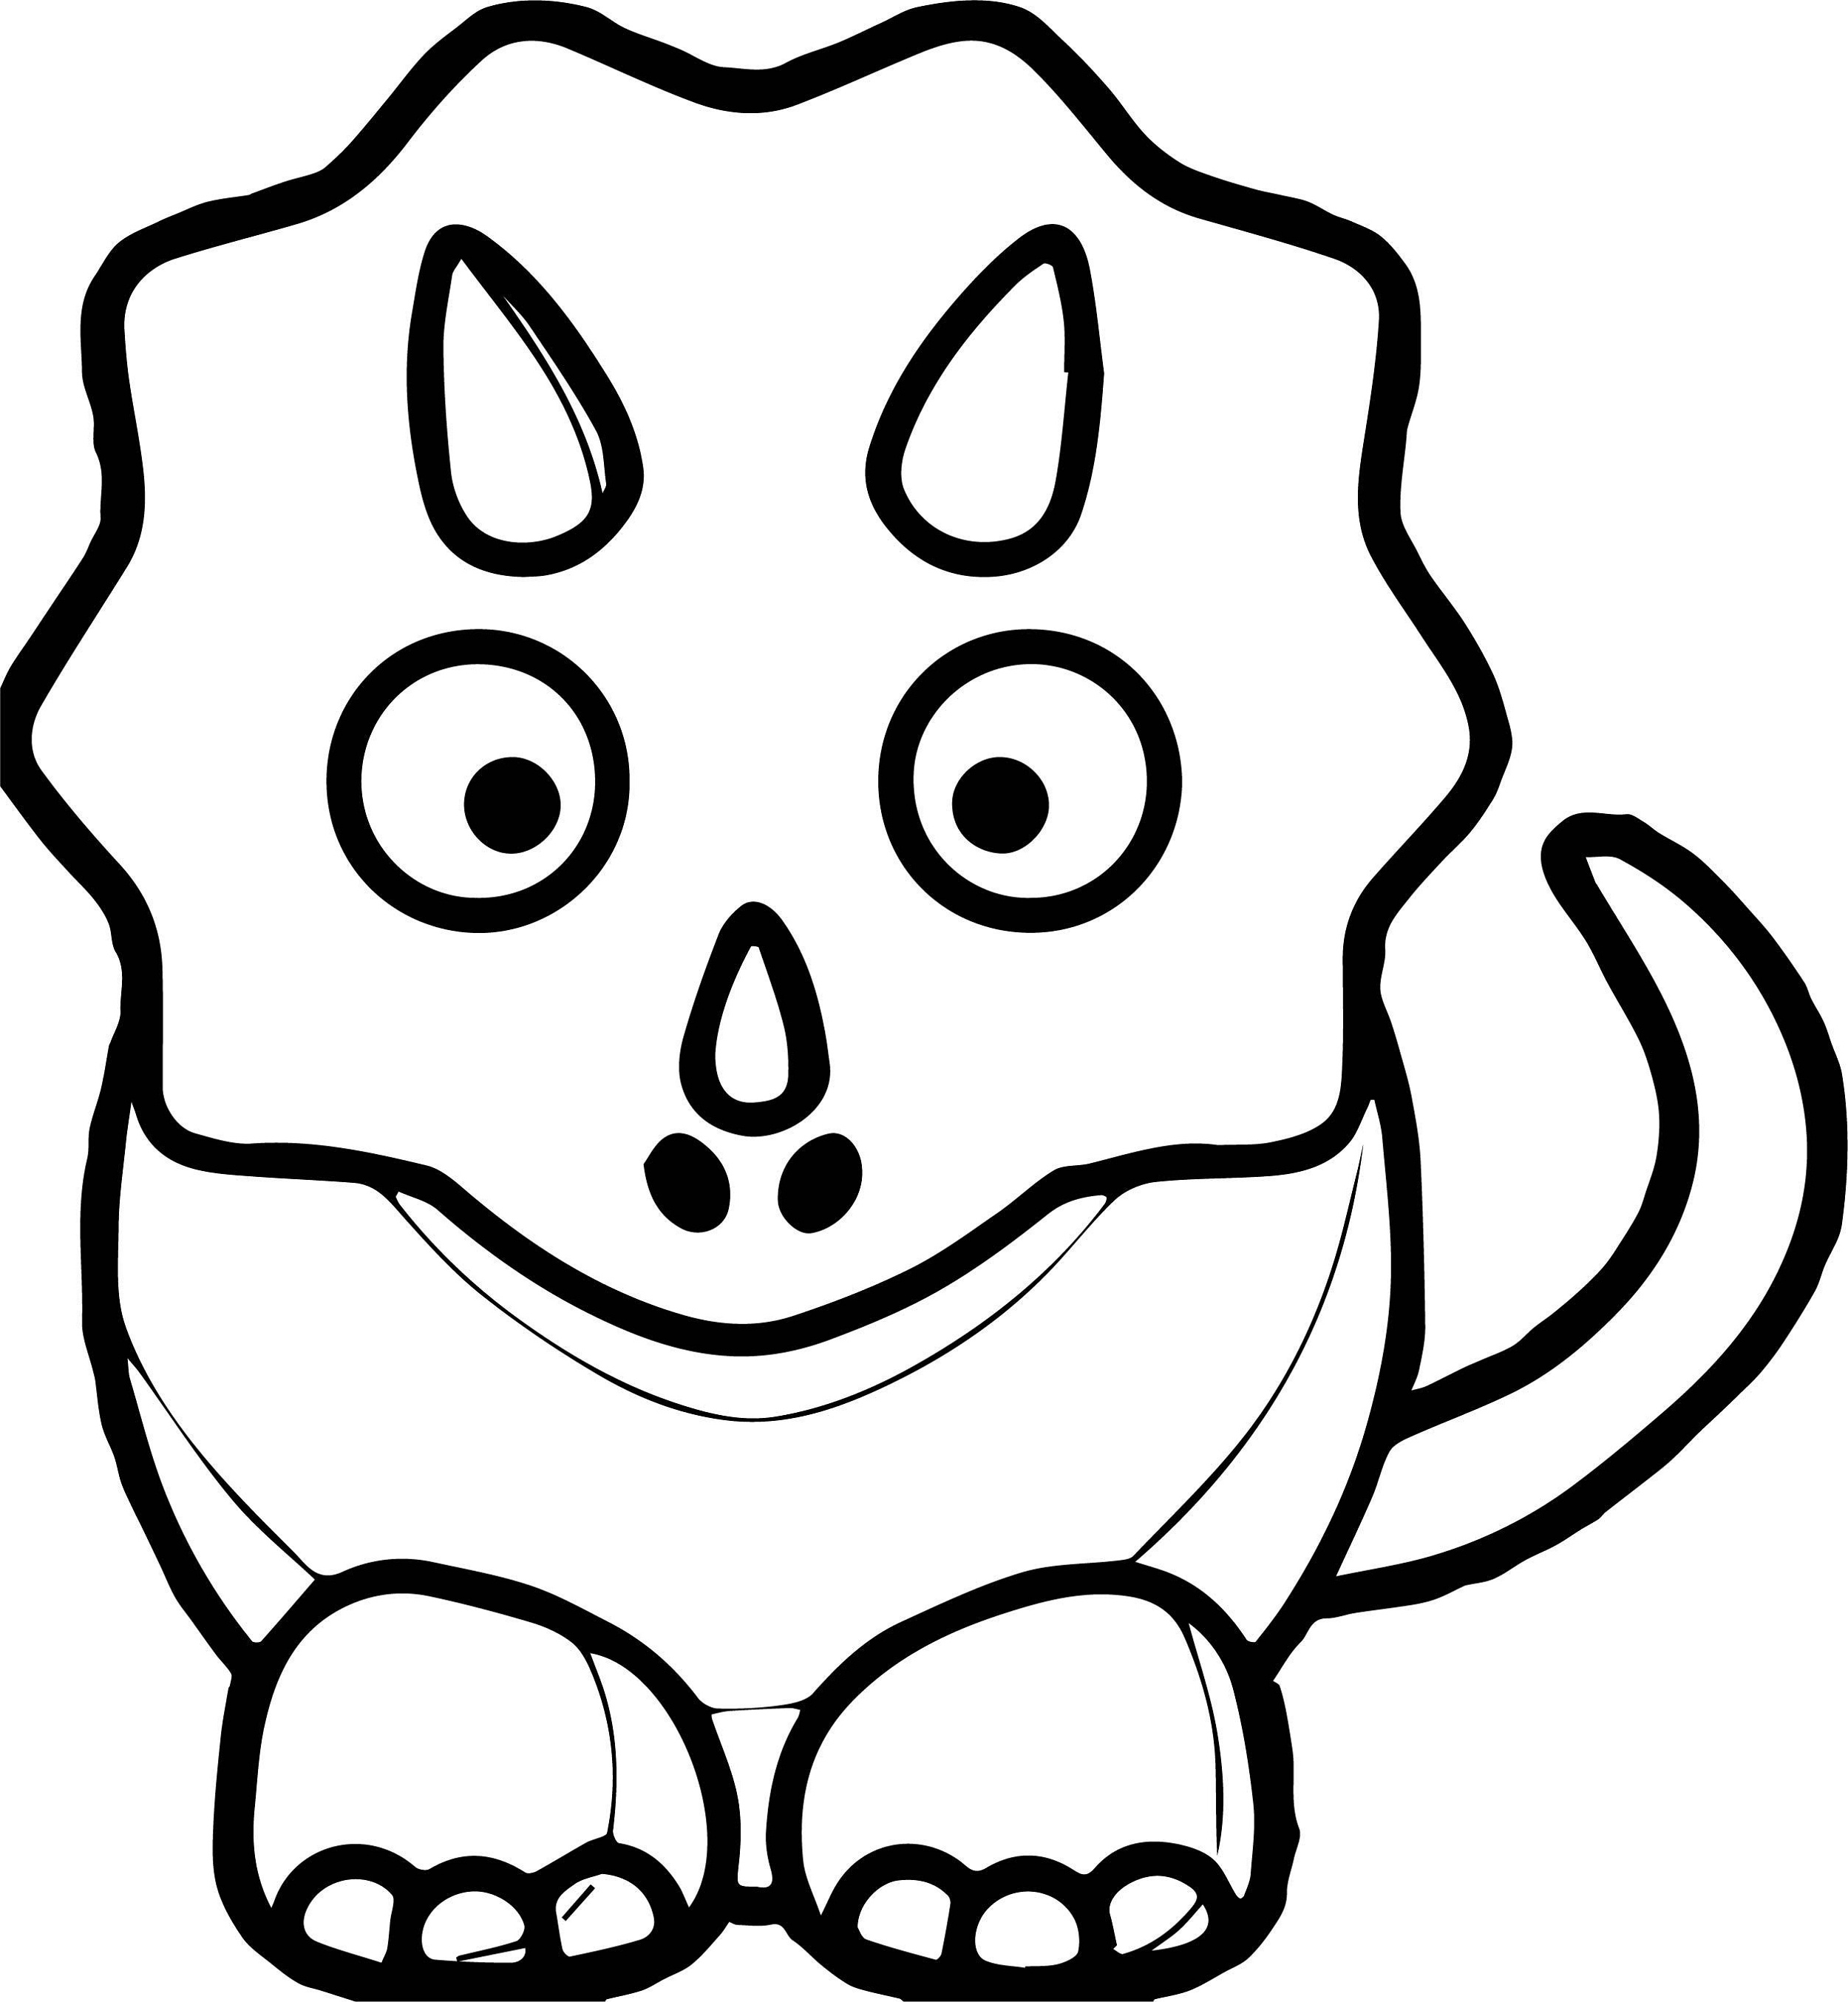 Baby Dinosaur Coloring Pages for Preschoolers | Activity ...